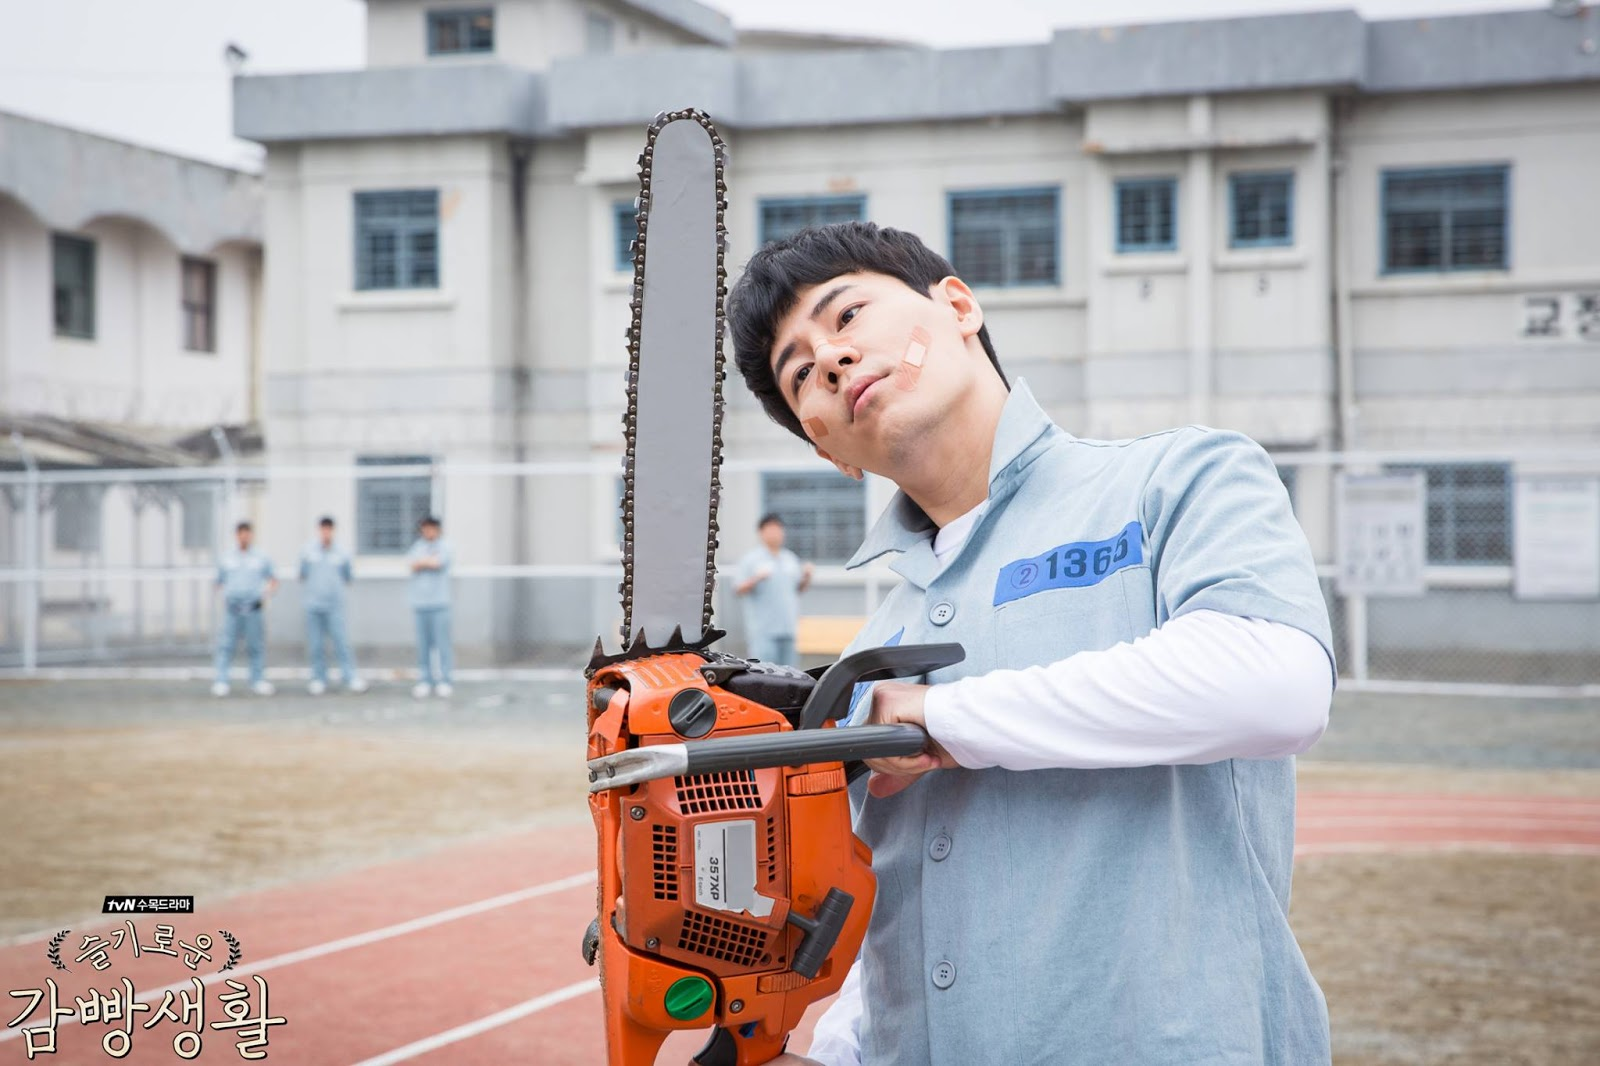 looney prison playbook